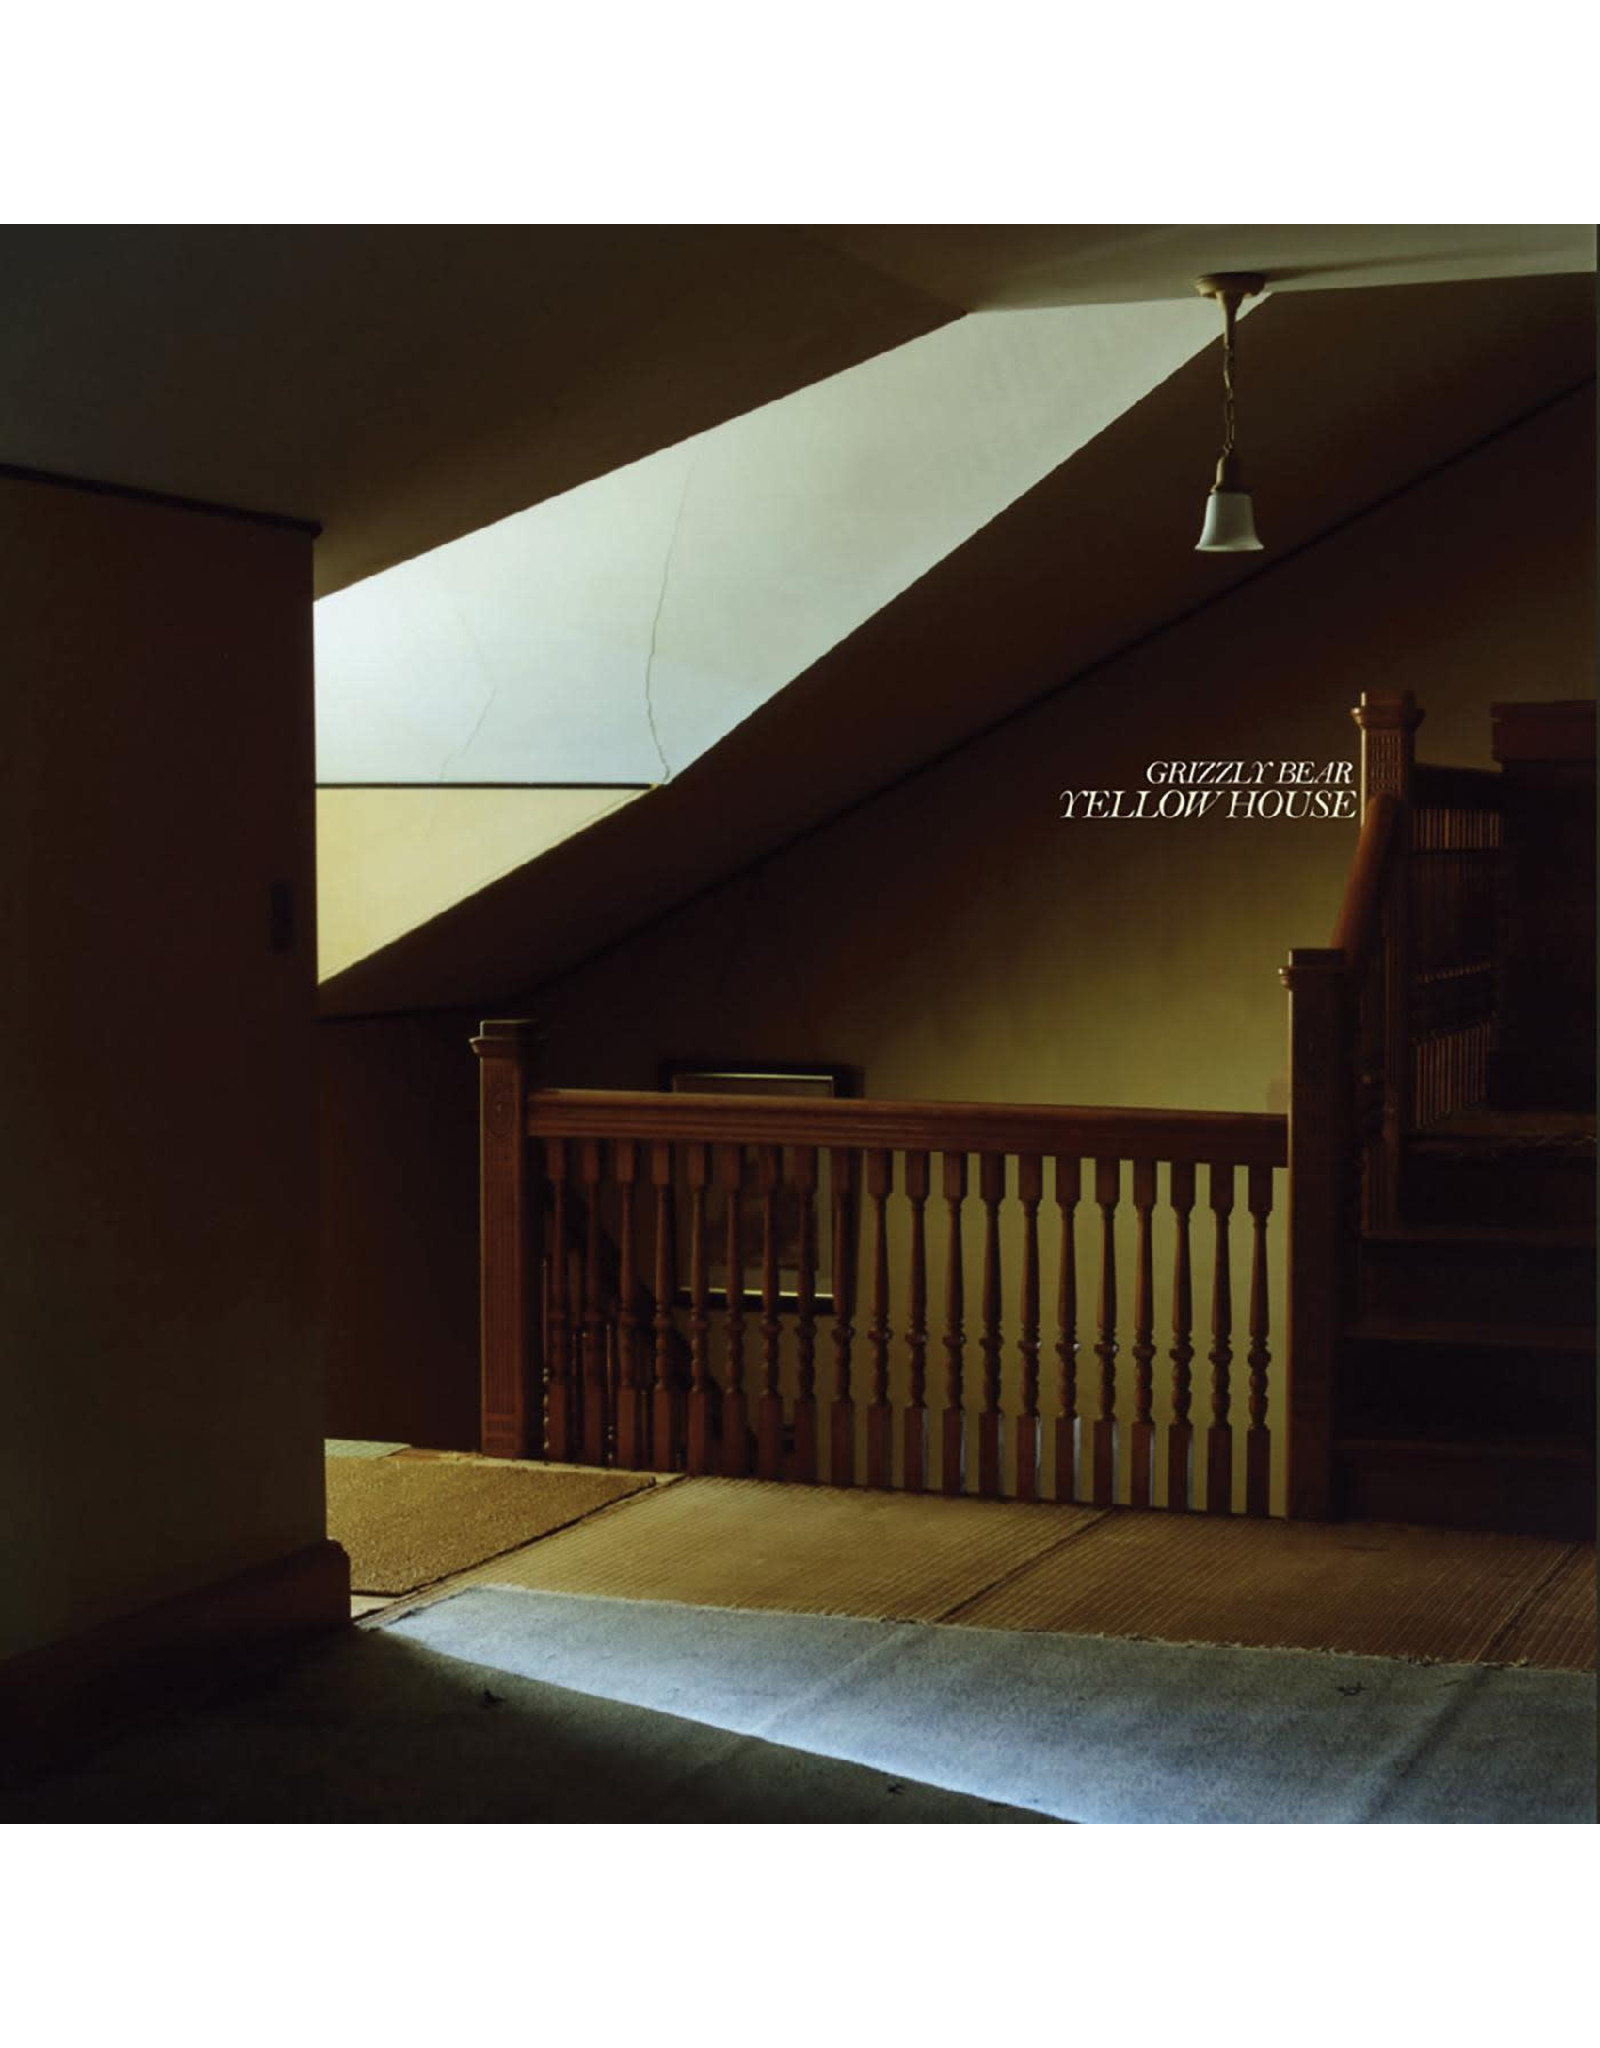 New Vinyl Grizzly Bear - Yellow House (15th Anniversary, Clear) 2LP